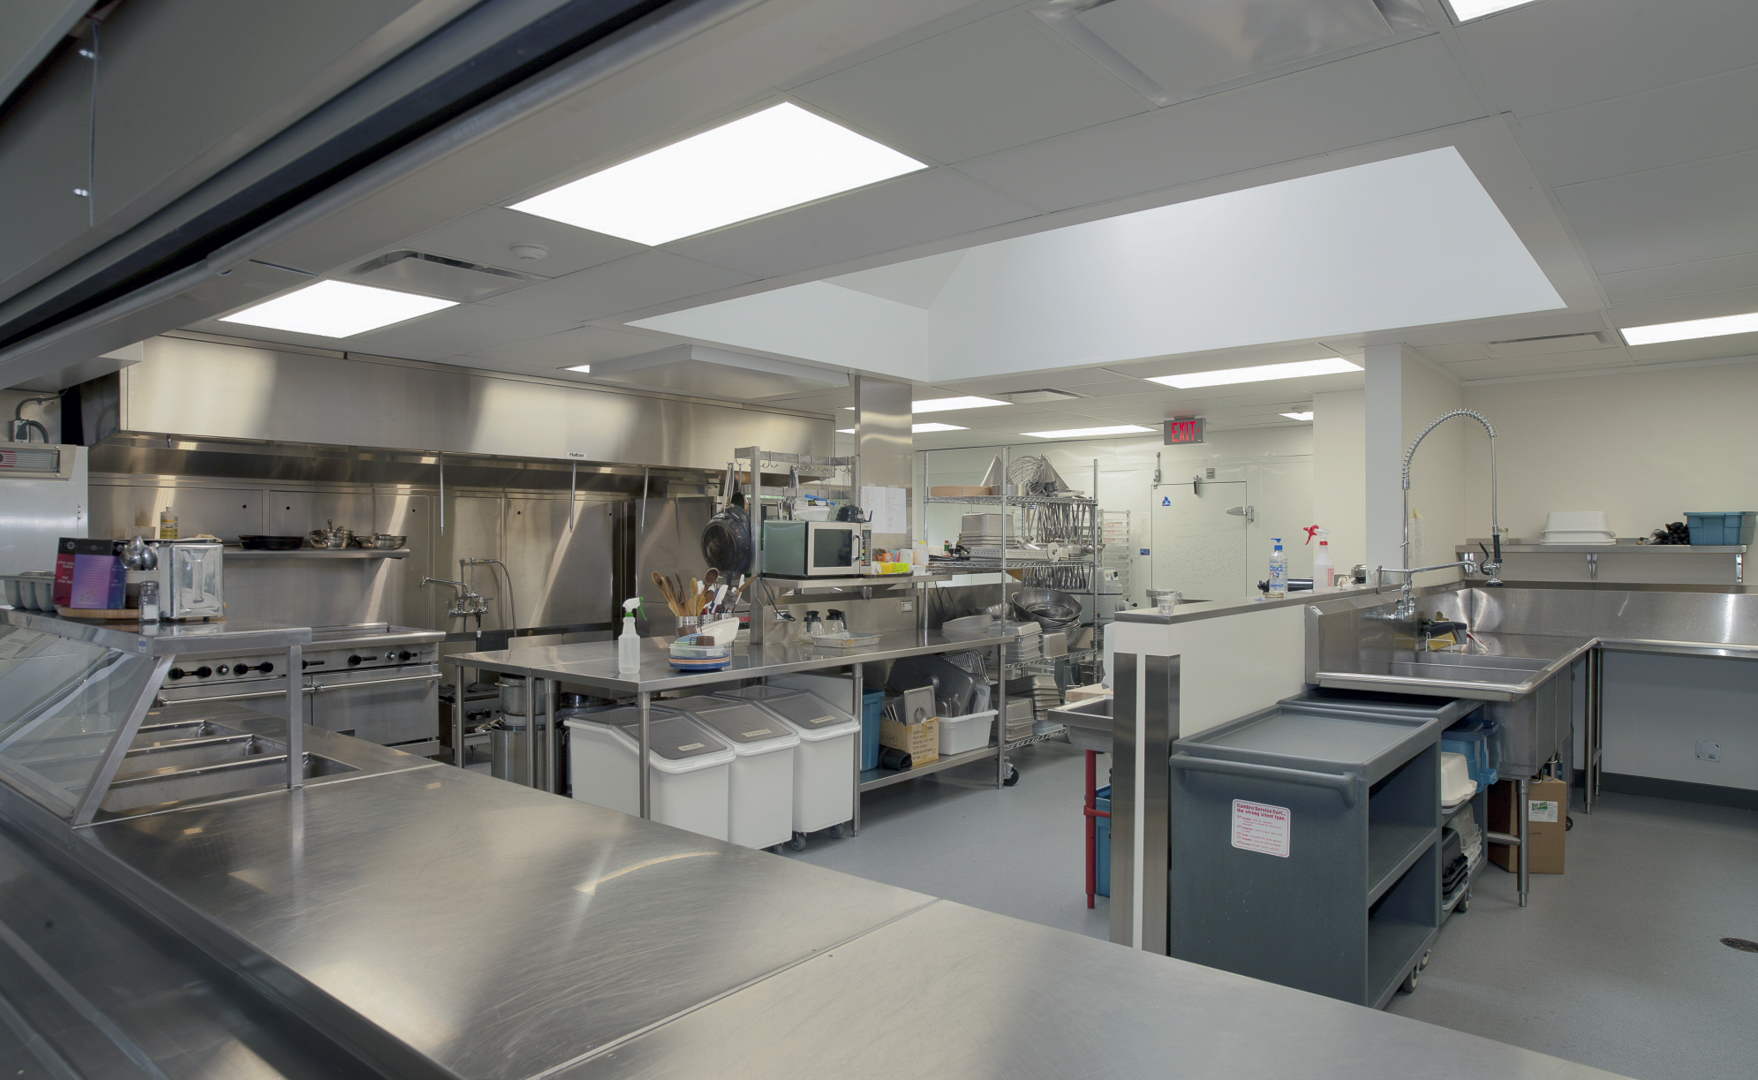 Fircom_Dining_Hall_Completed_Project_Web-2.jpg